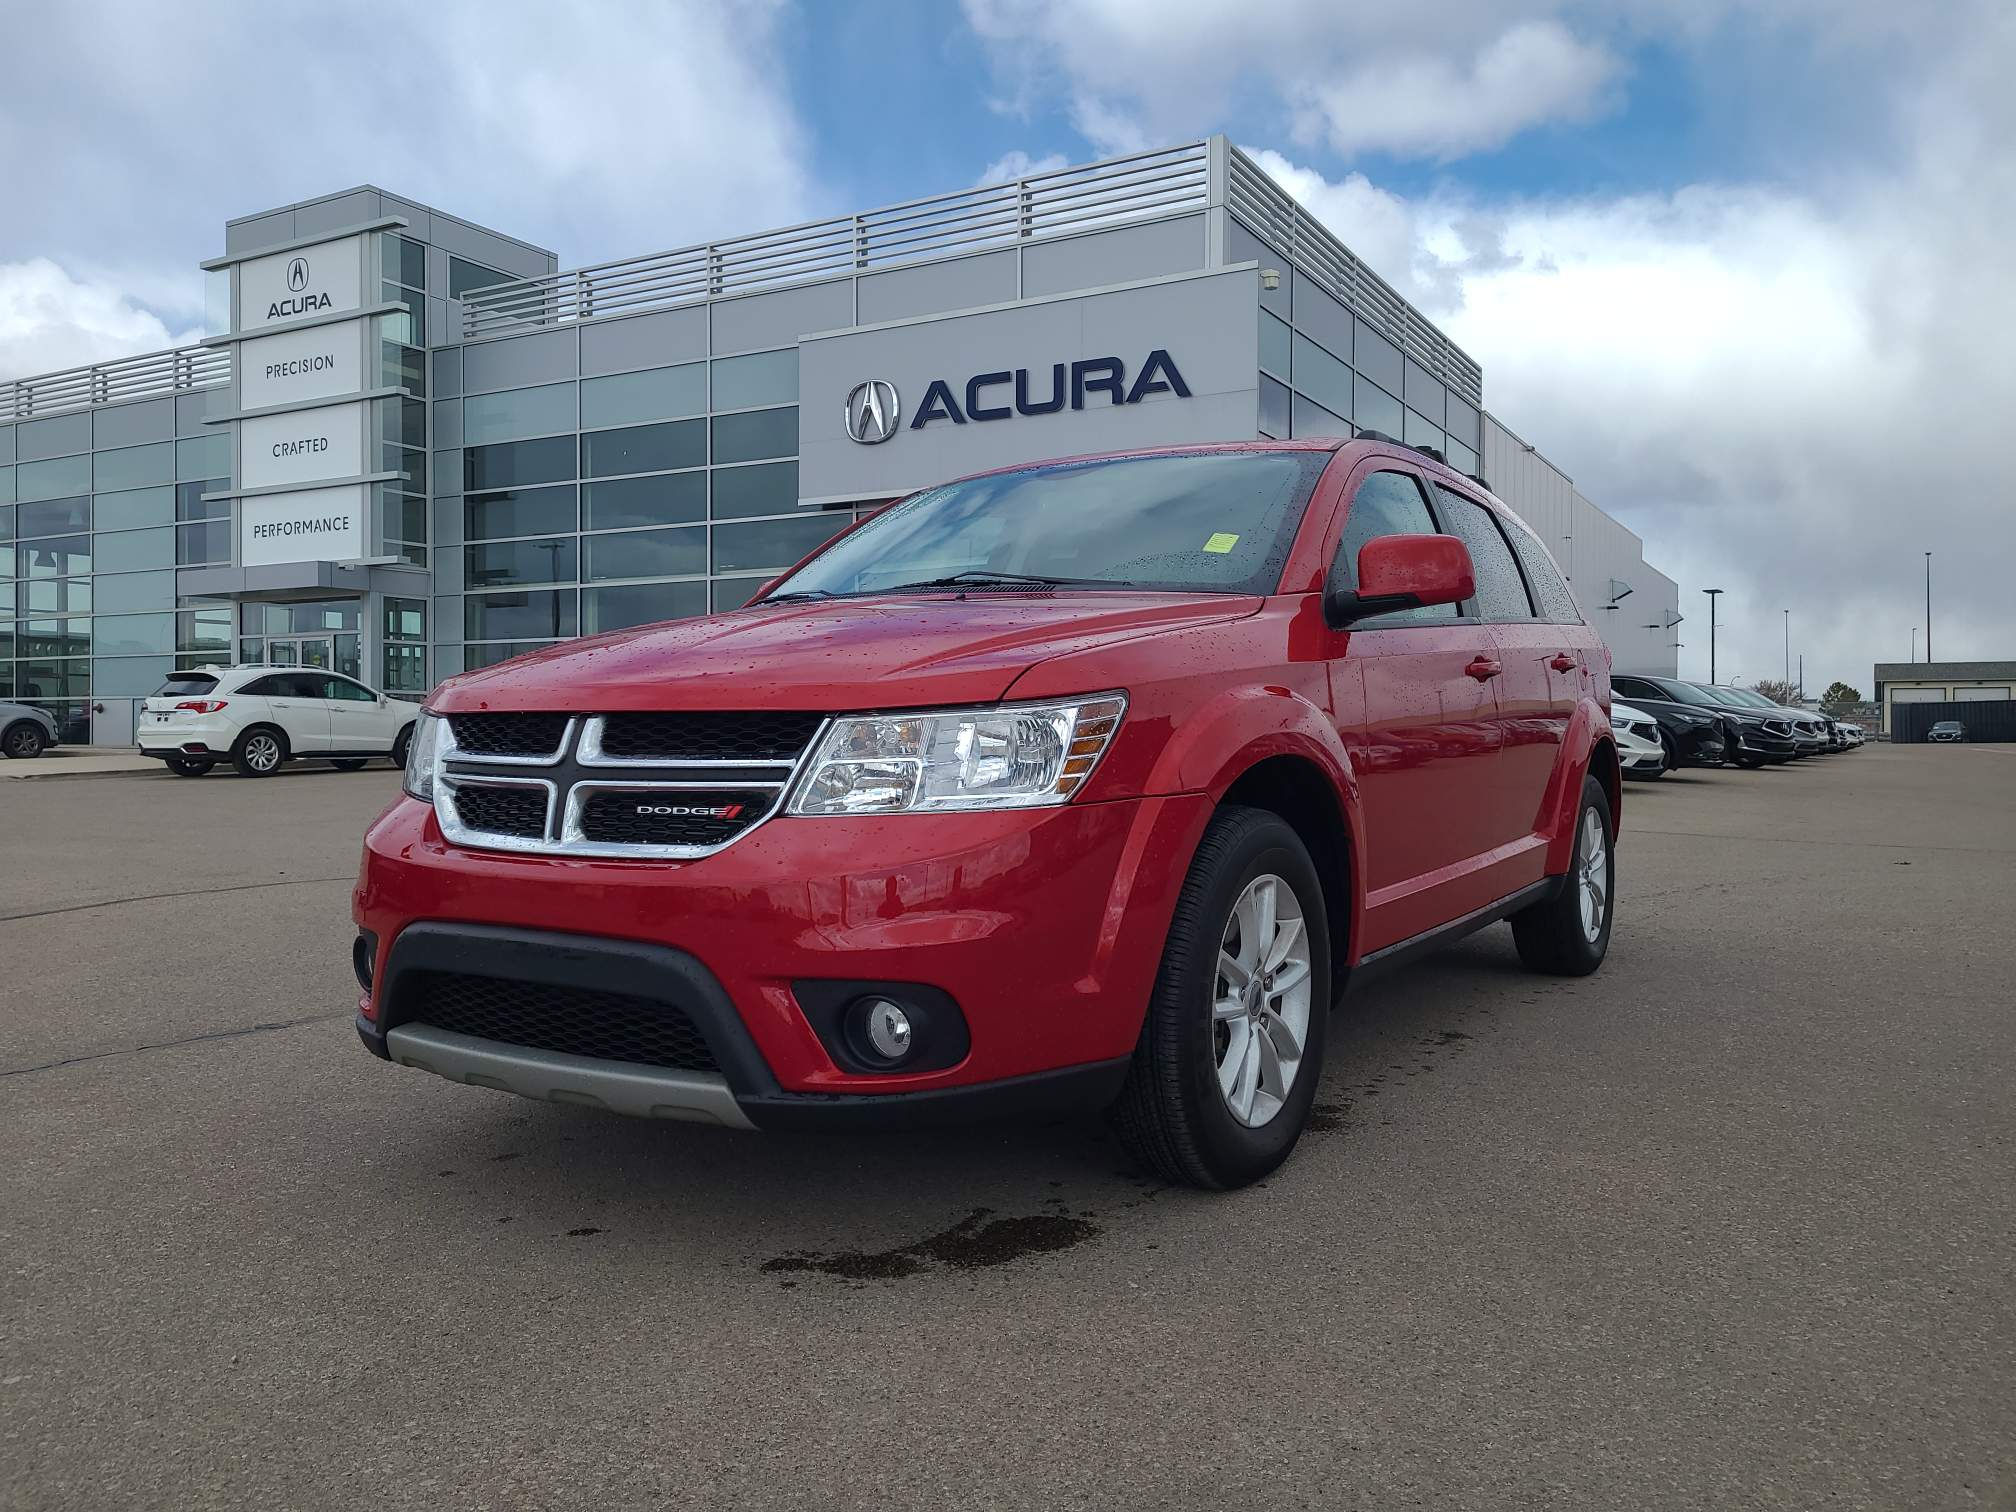 used 2018 Dodge Journey car, priced at $20,669